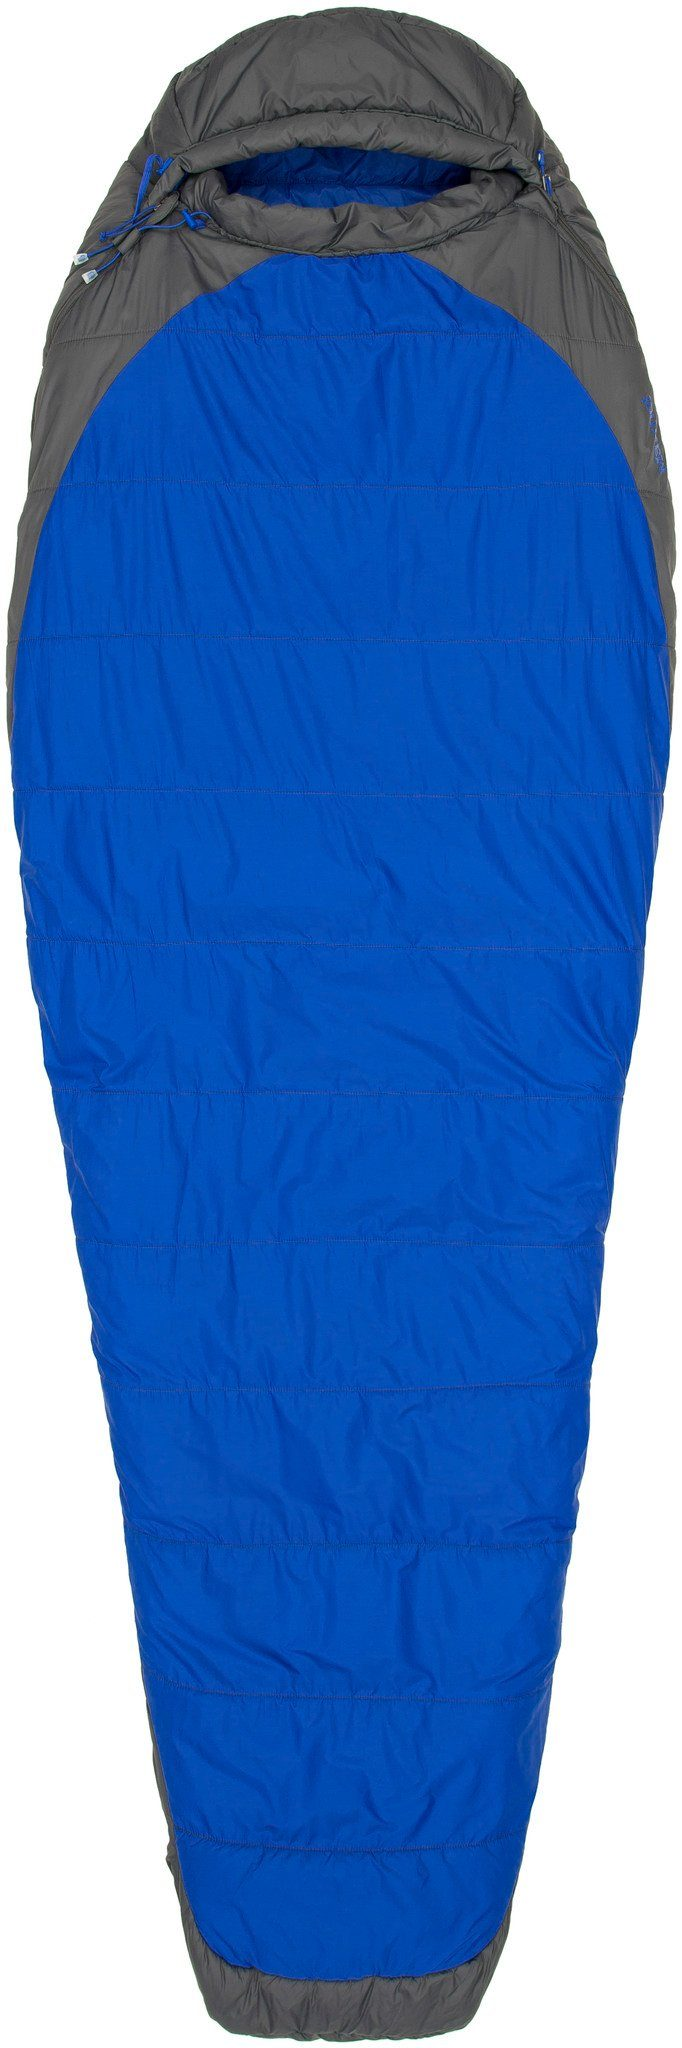 Marmot Schlafsack »Trestles Elite 15 Sleeping Bag Regular«